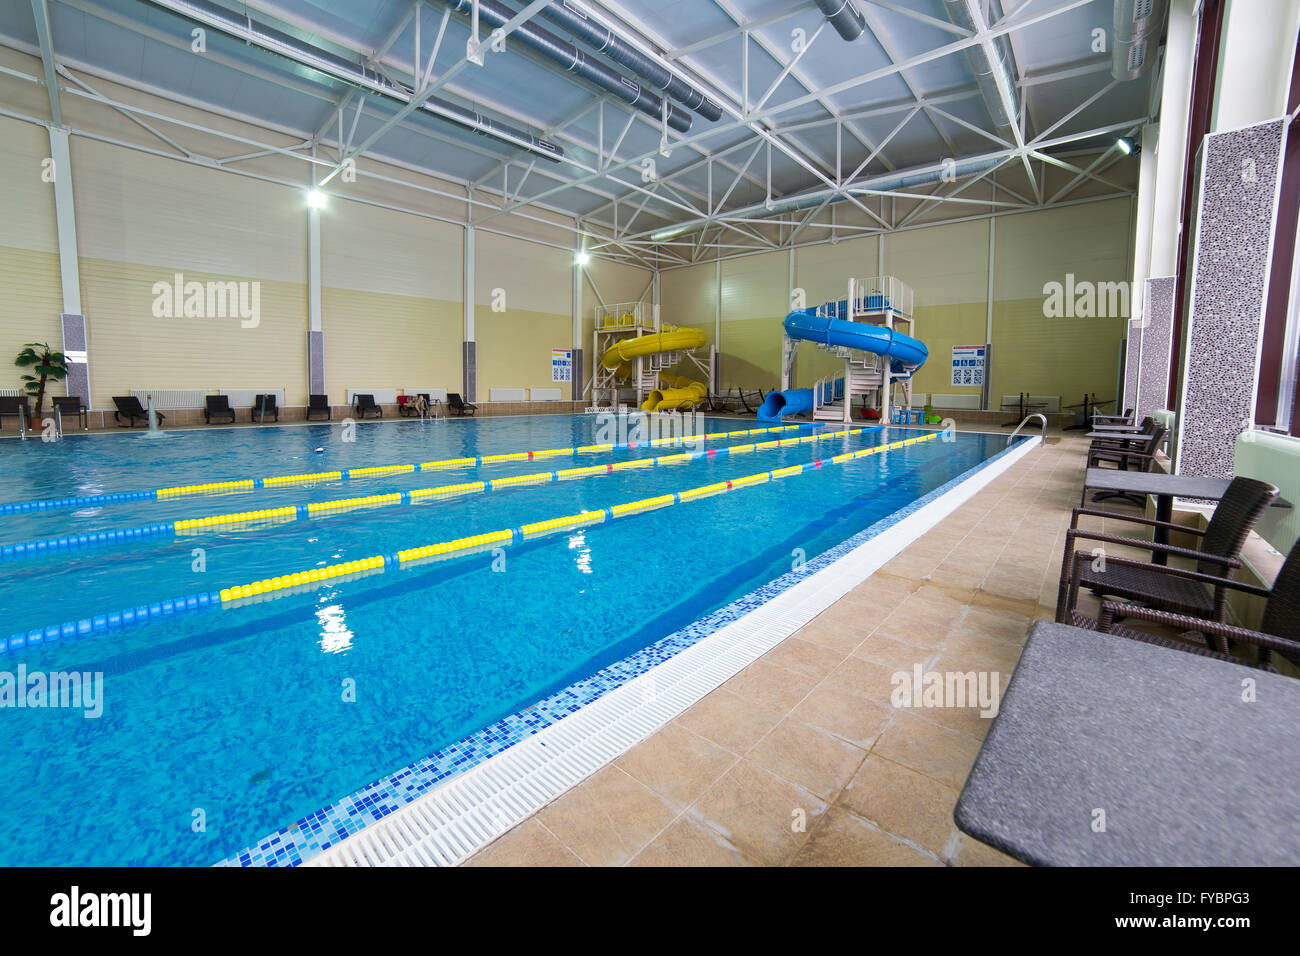 Public Swimming Pool Interior Stock Photo Royalty Free Image 102906723 Alamy